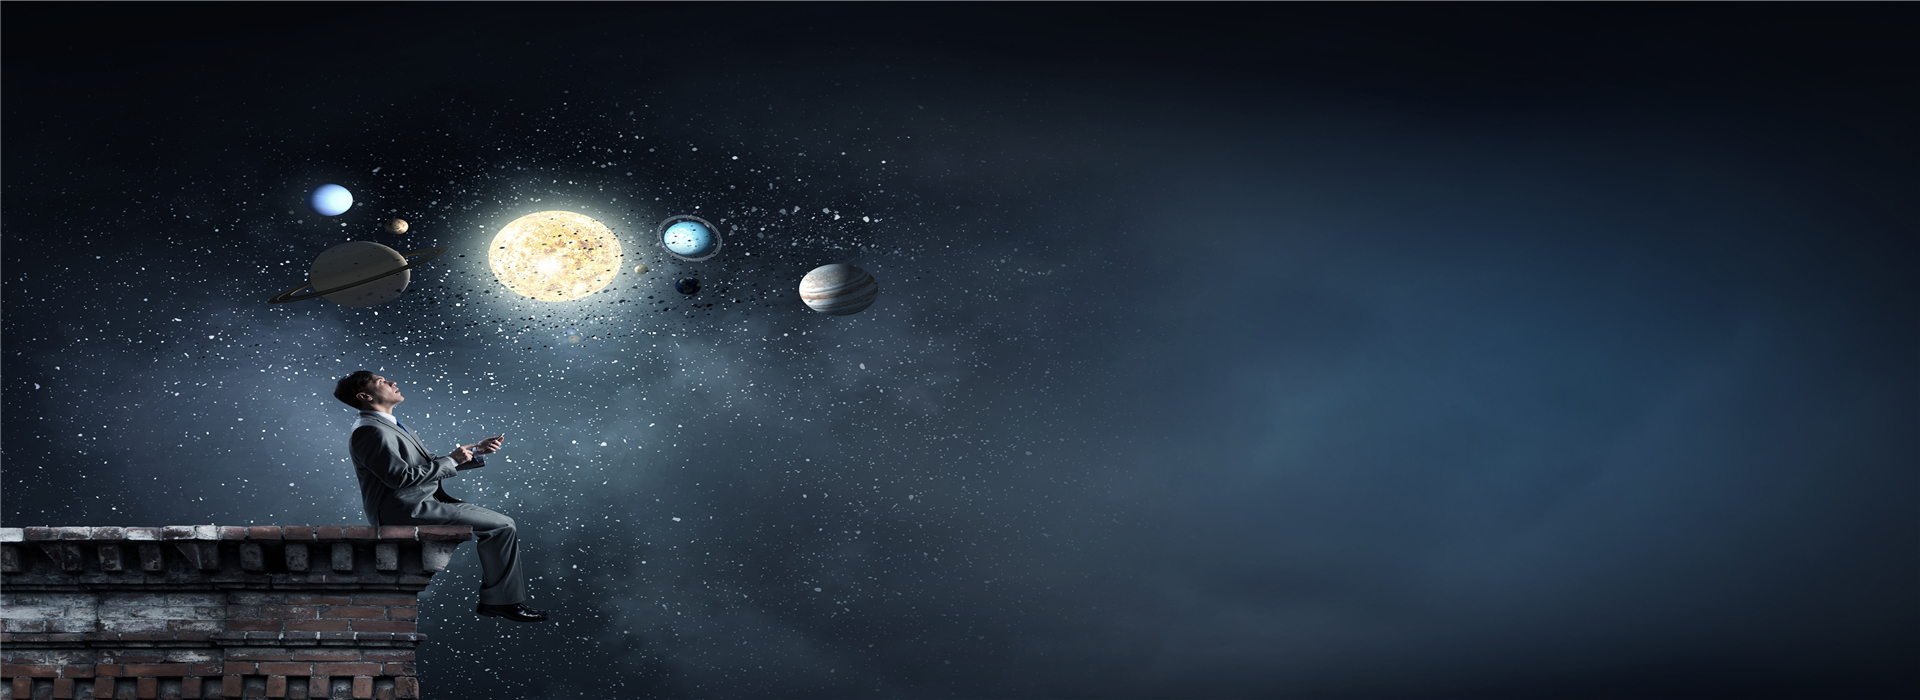 Space Star Technology Background, Star, Outer, Space ...